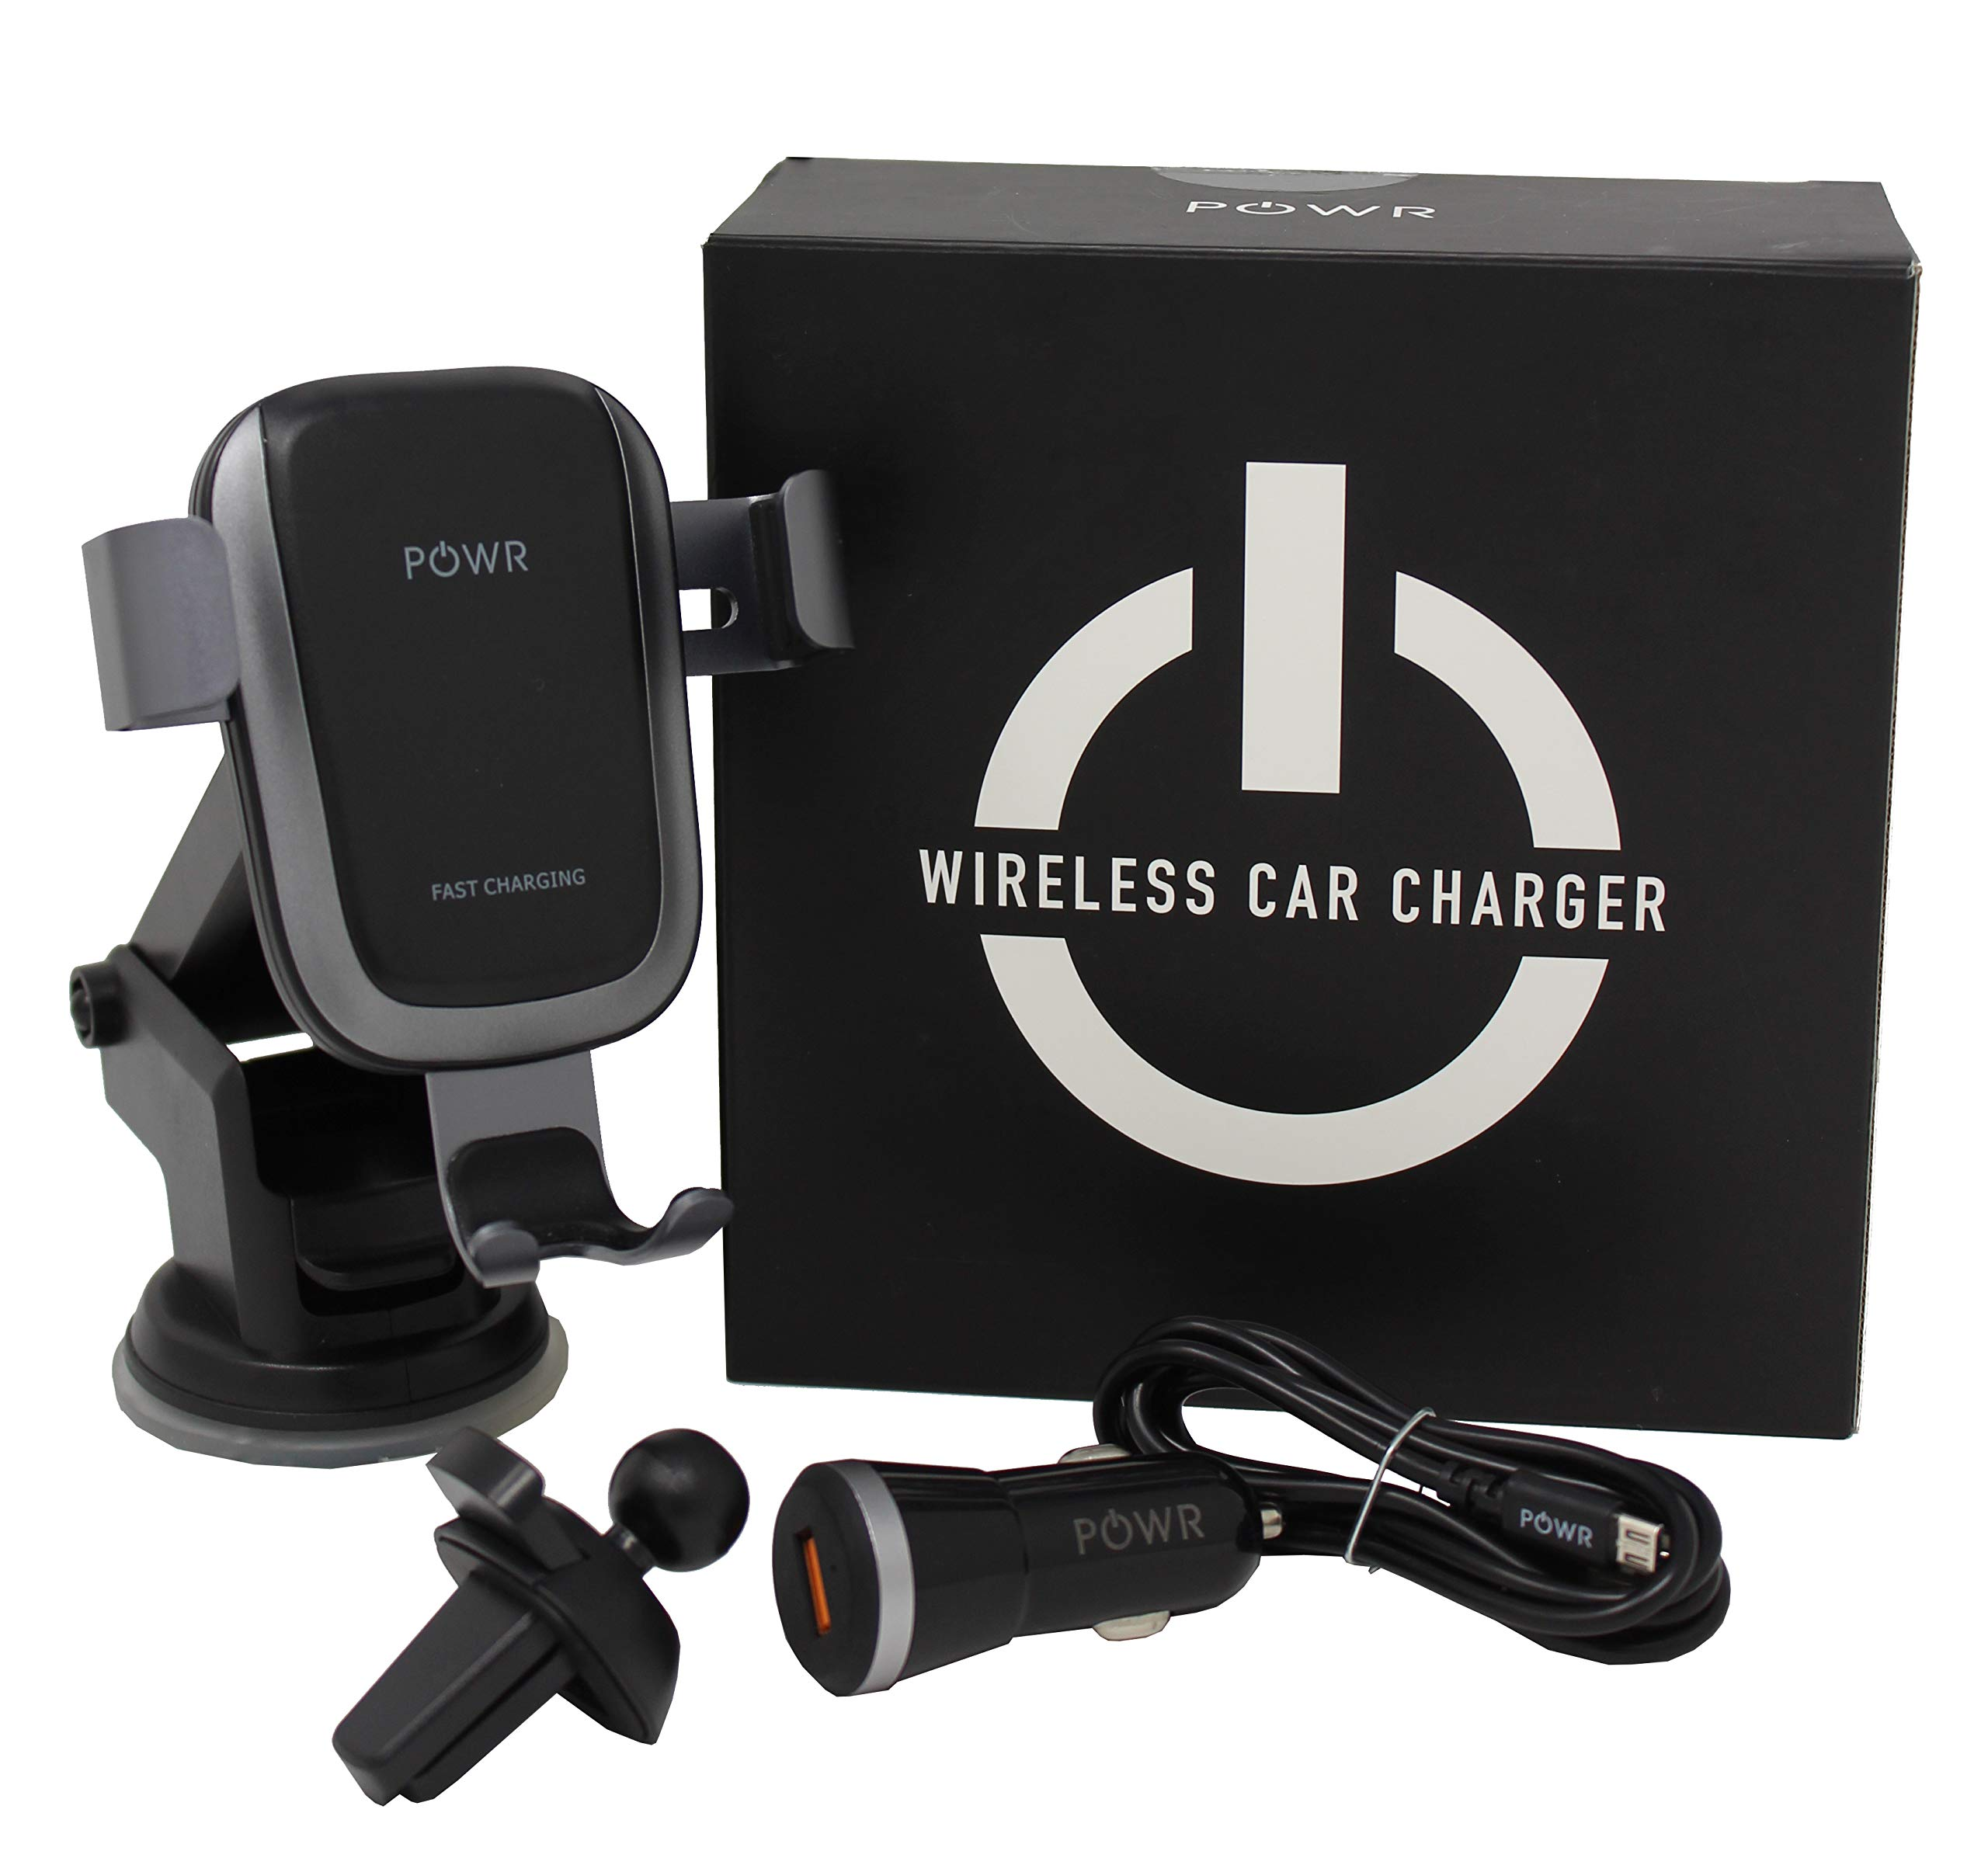 POWR Fast Wireless Car Charger | Fast Charging Station + Vent & Windshield/Dash Mounts for Samsung Galaxy S10/S10+/S9/S9+/S8/S8+/S7 Edge, Note 9/8, Apple iPhone XSMax/XR/XS/X/8+ & More!